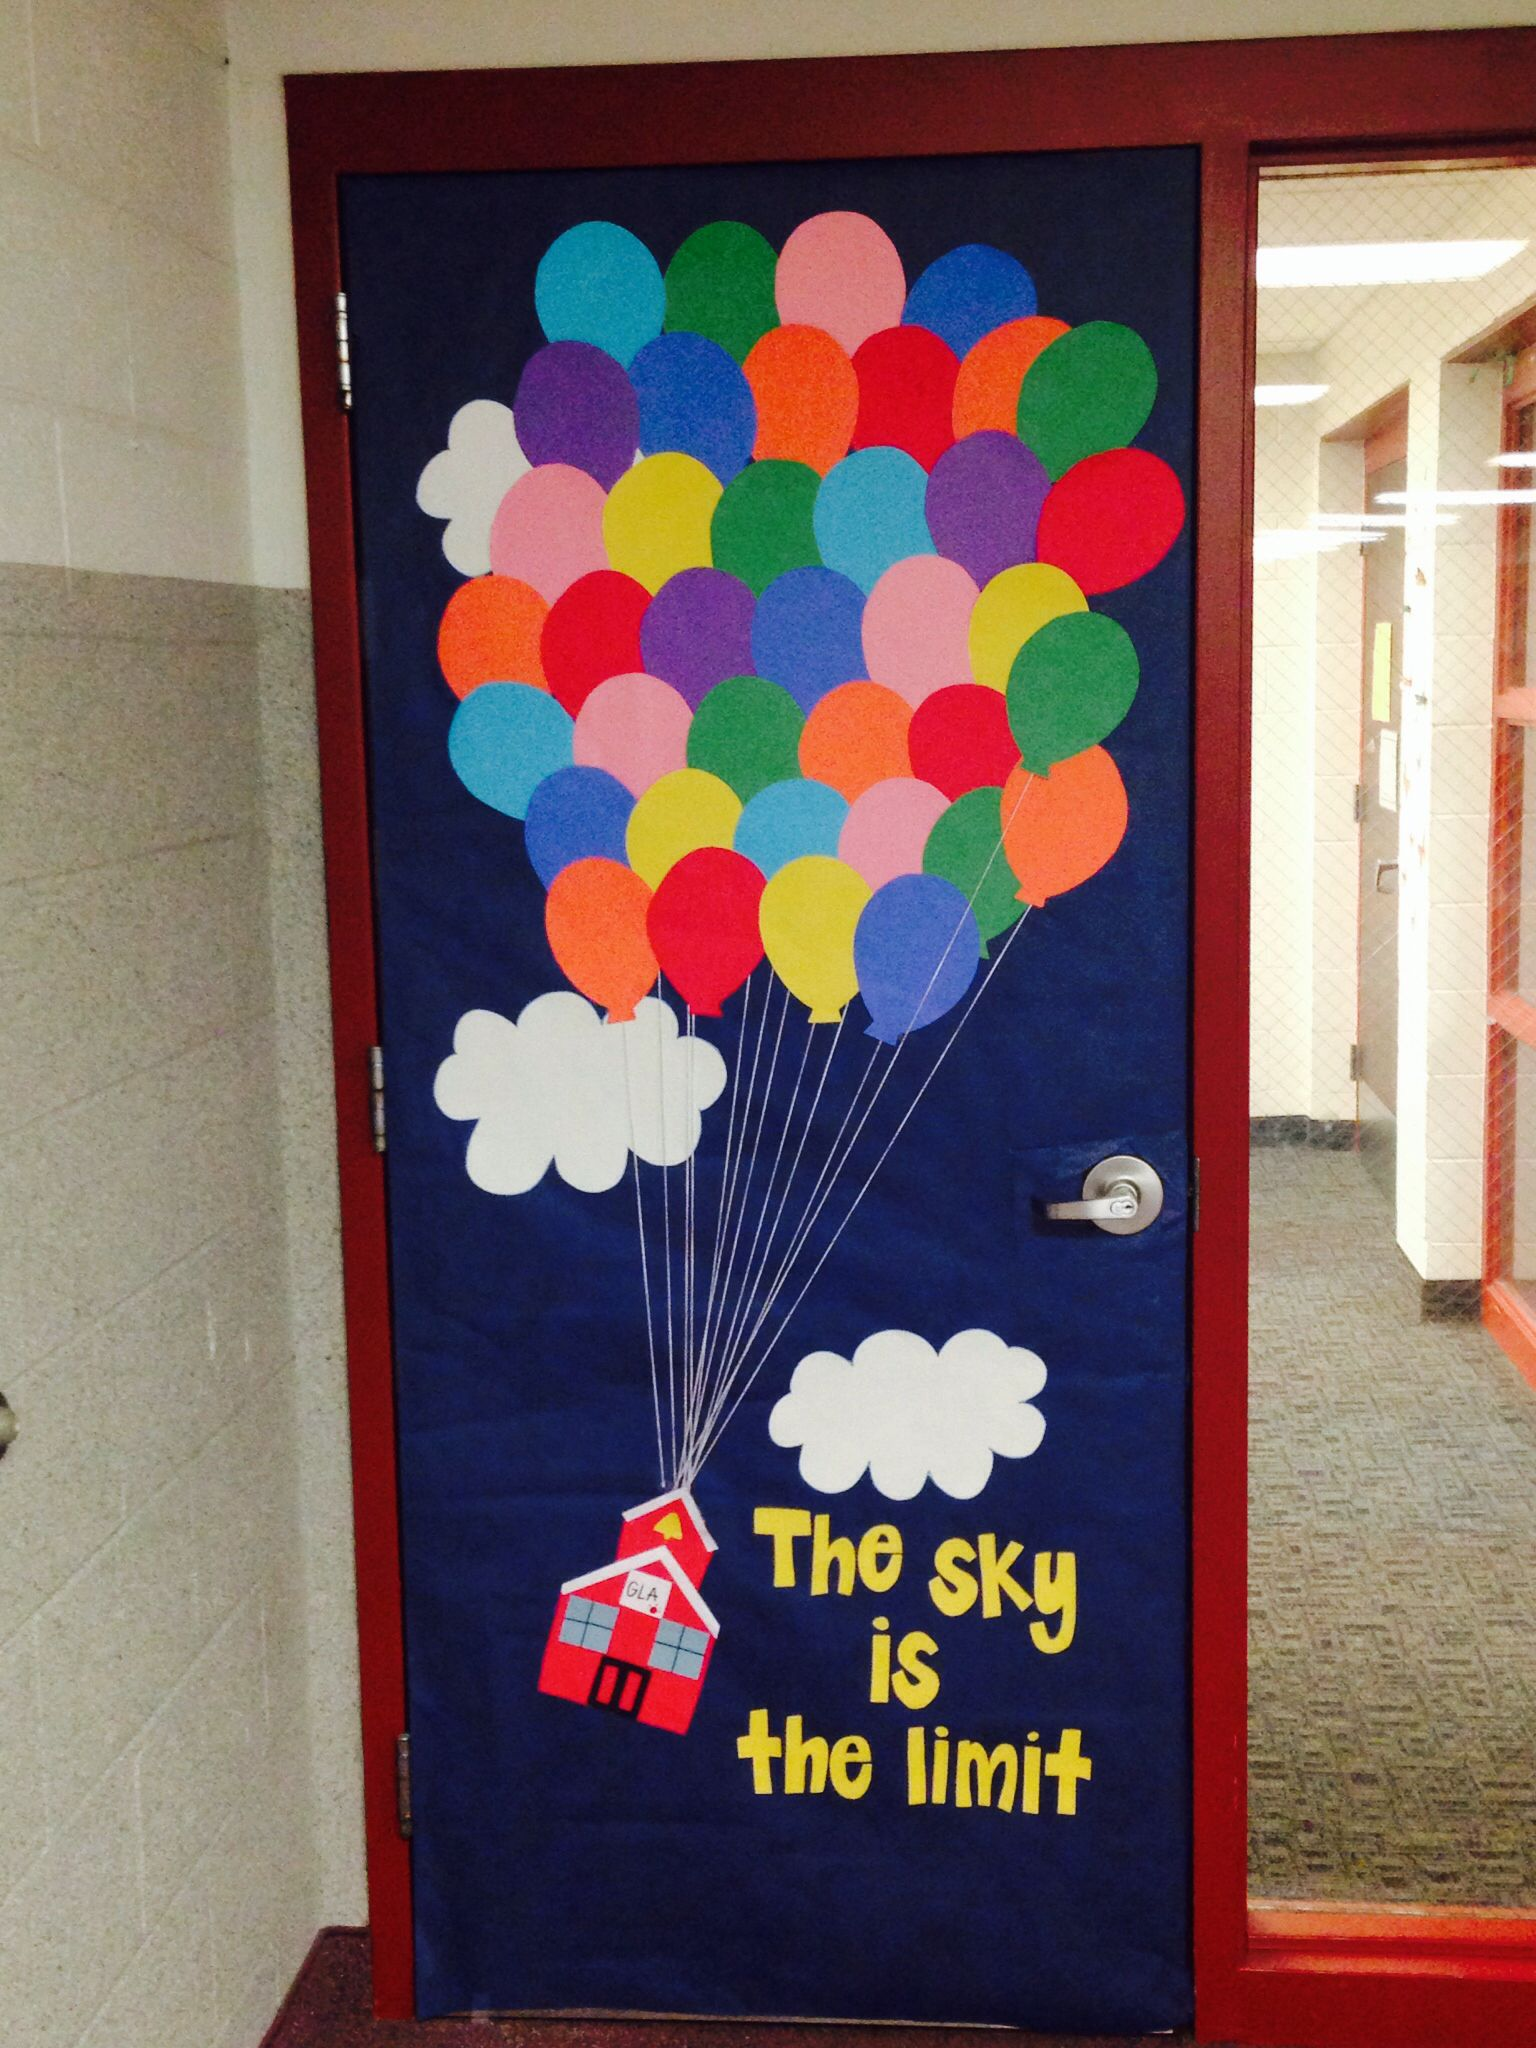 Classroom Wall Decorations Primary School : Classroom door decor inspired by the movie up instead of